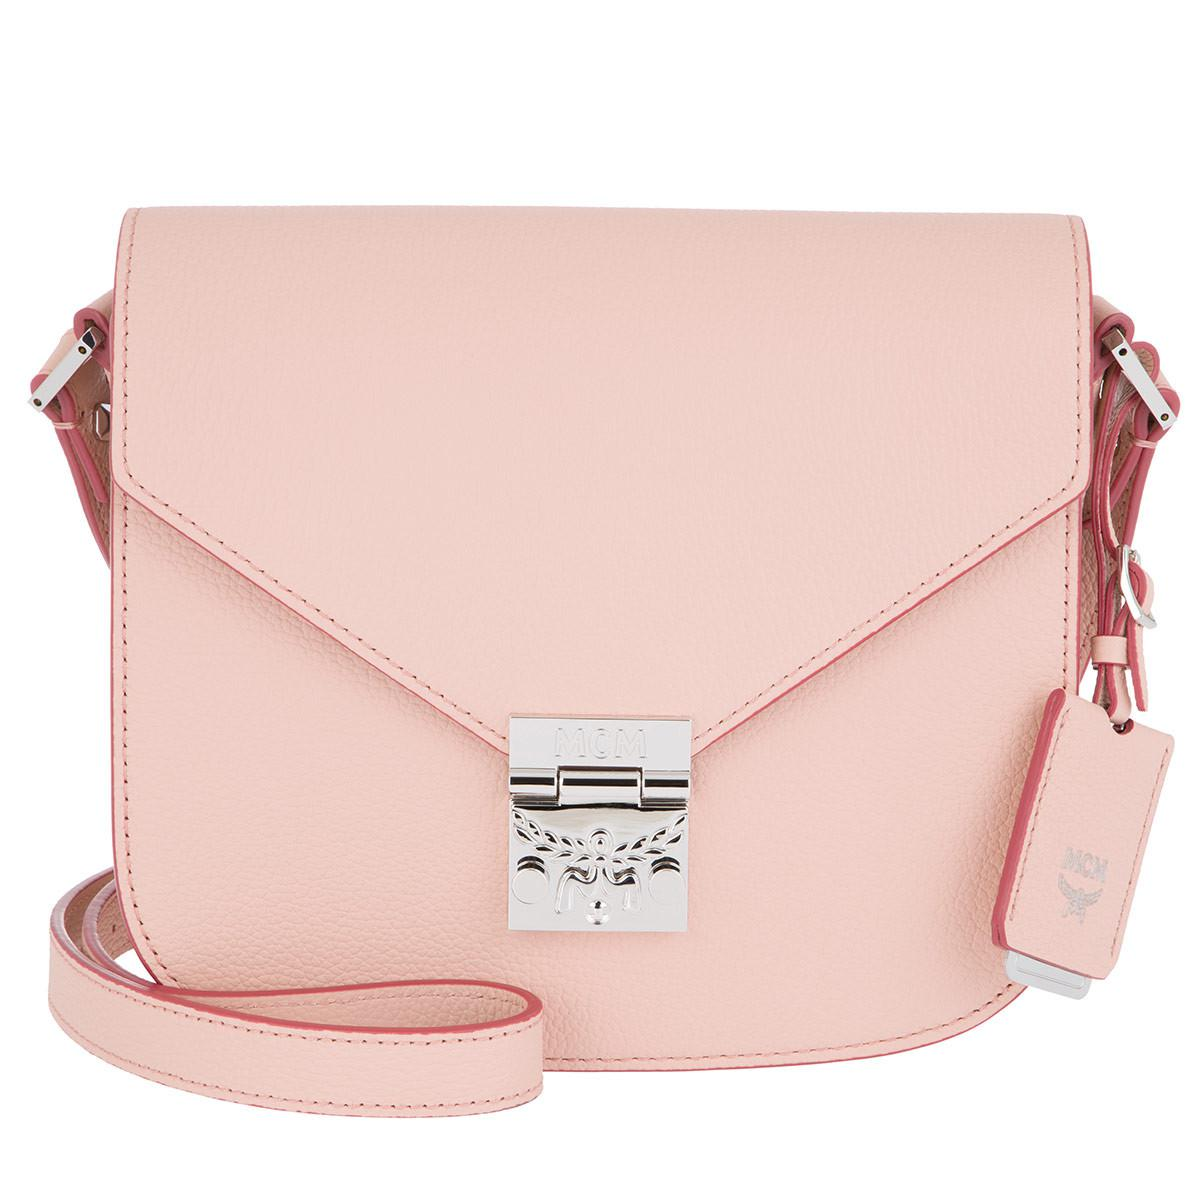 Patricia Small Bag in Blush Pink Park Avenue Leather MCM iBiEwe2